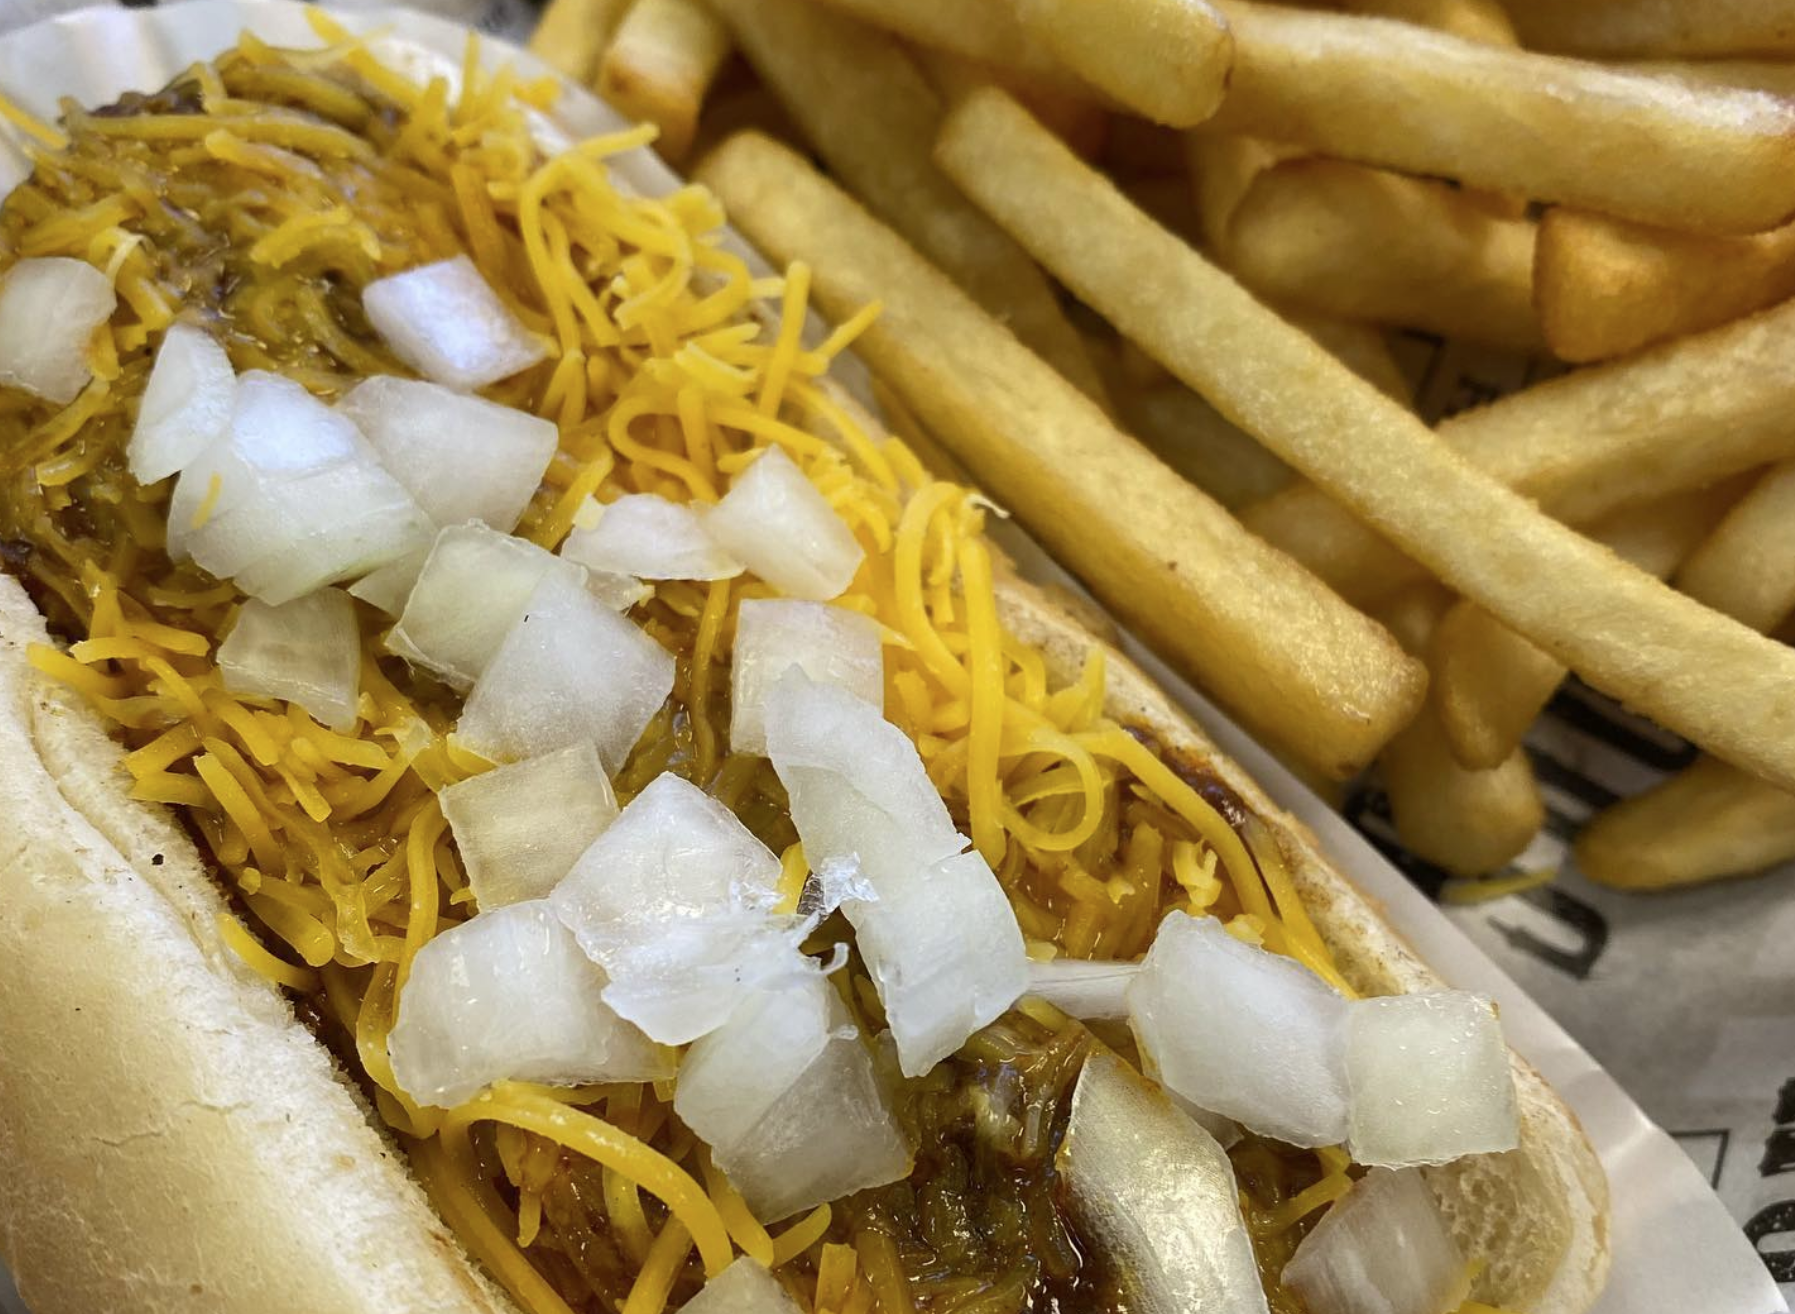 Original Hot Dog Factory coming soon to Center Point